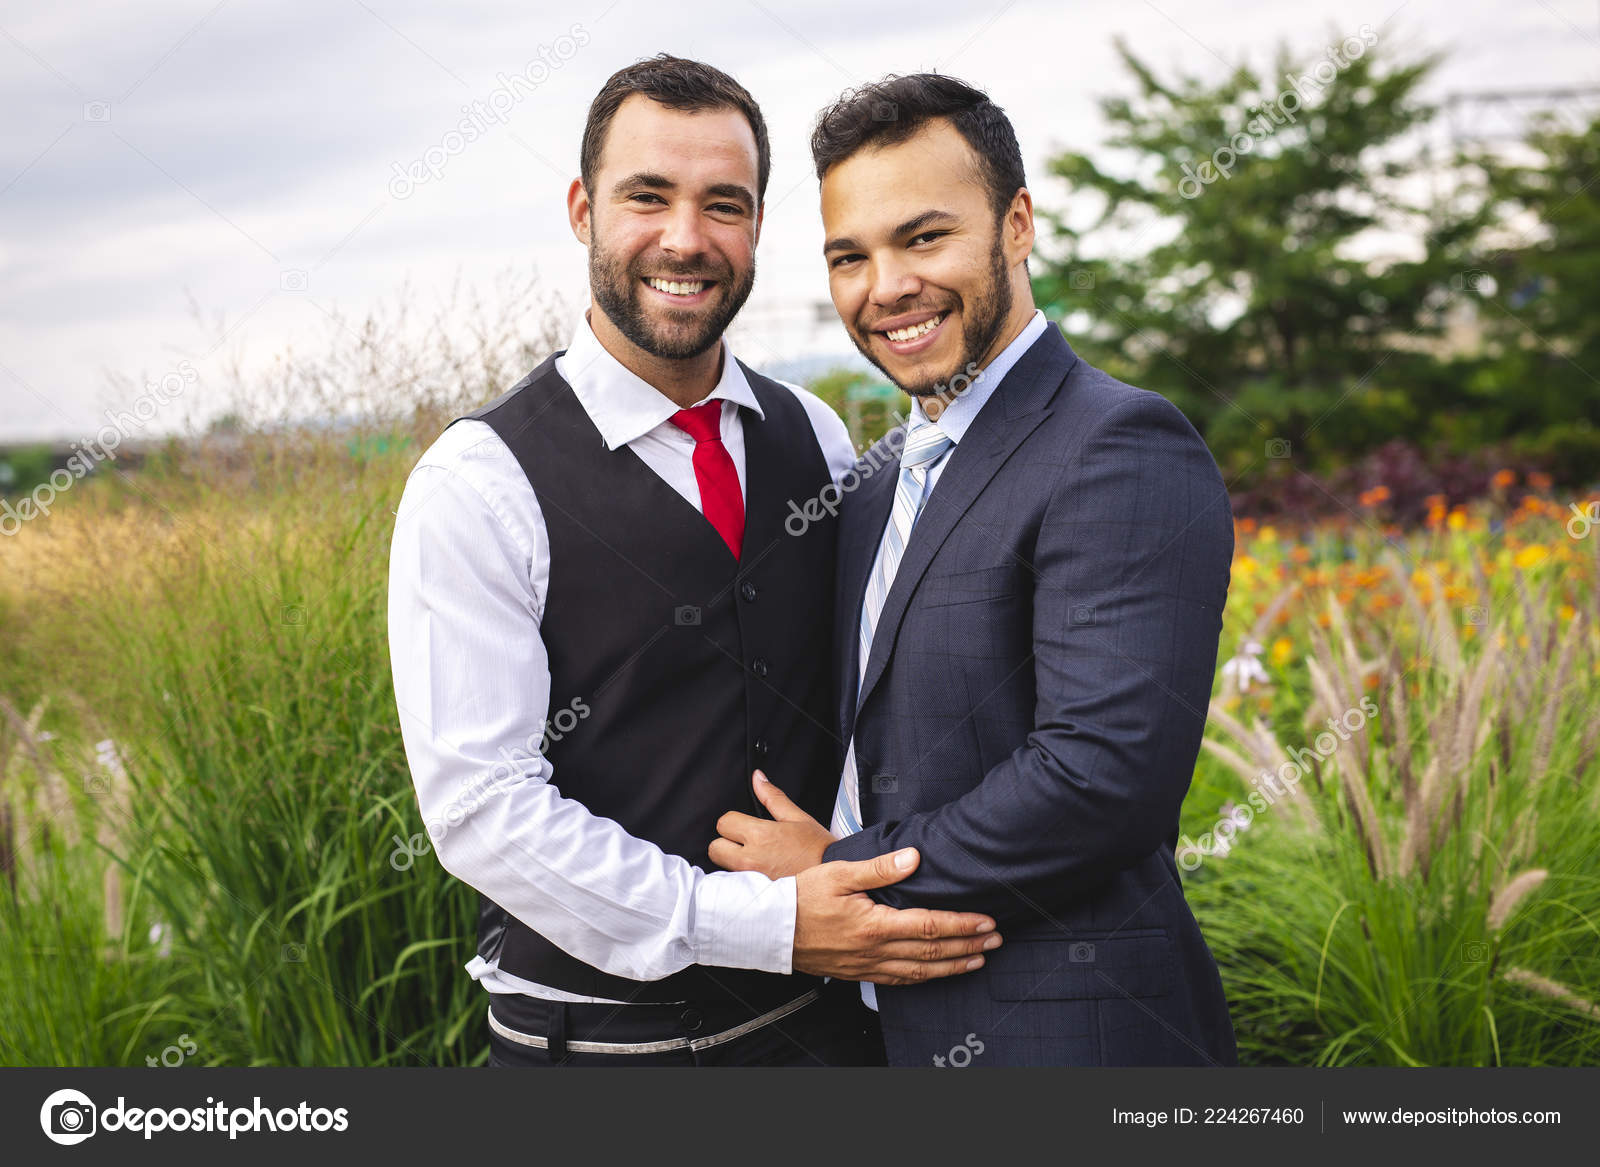 A Handsome Gay Male Couple In The Park On Their Wedding Day Stock Image